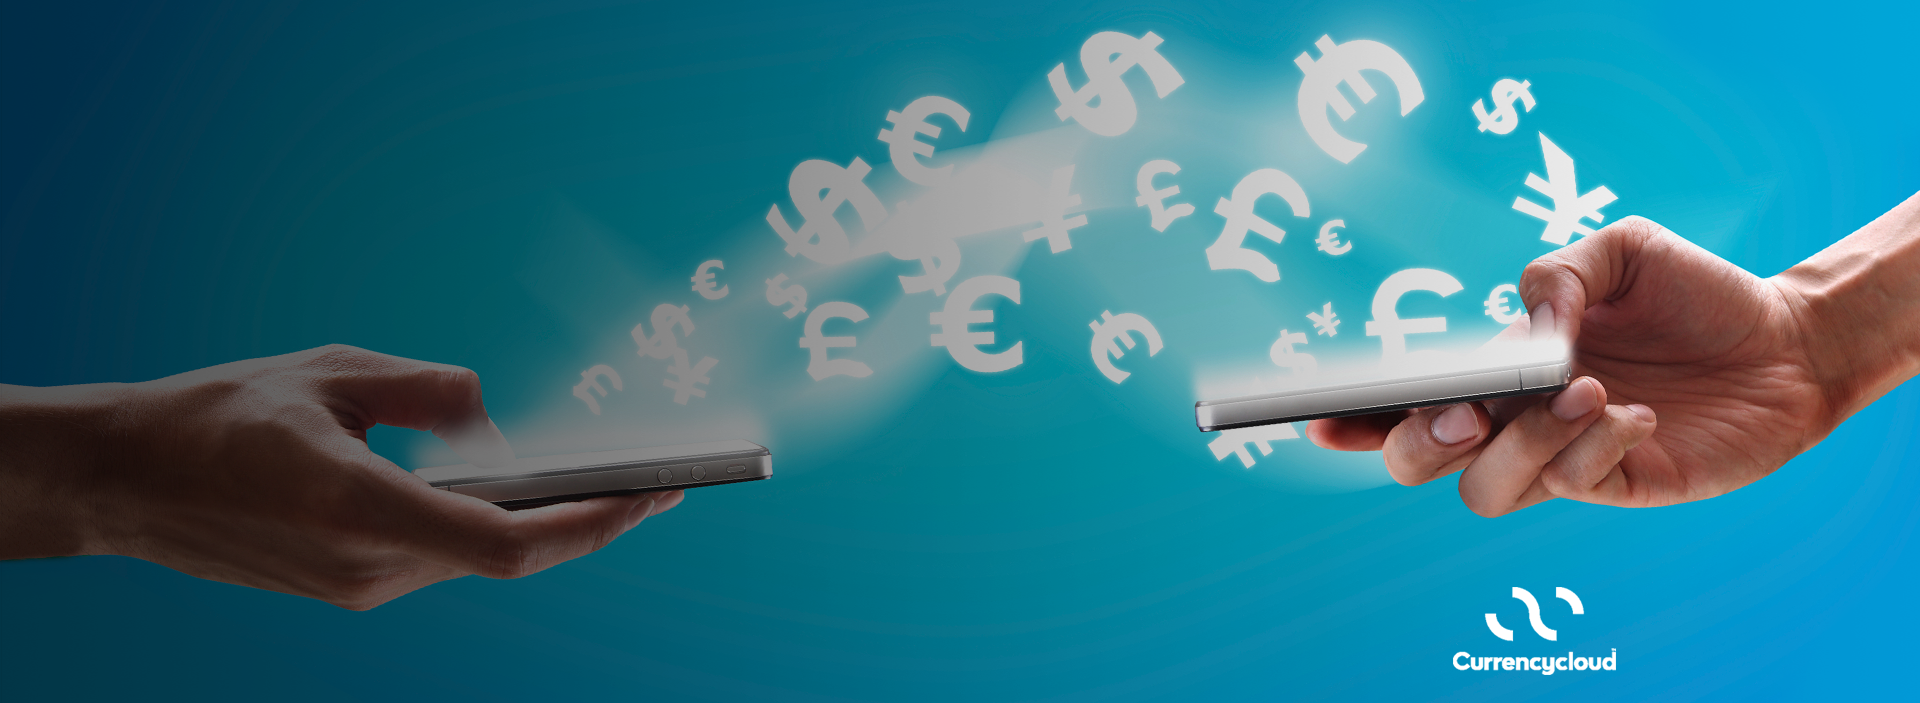 Fintech company Currencycloud raises $25M led by Google Ventures